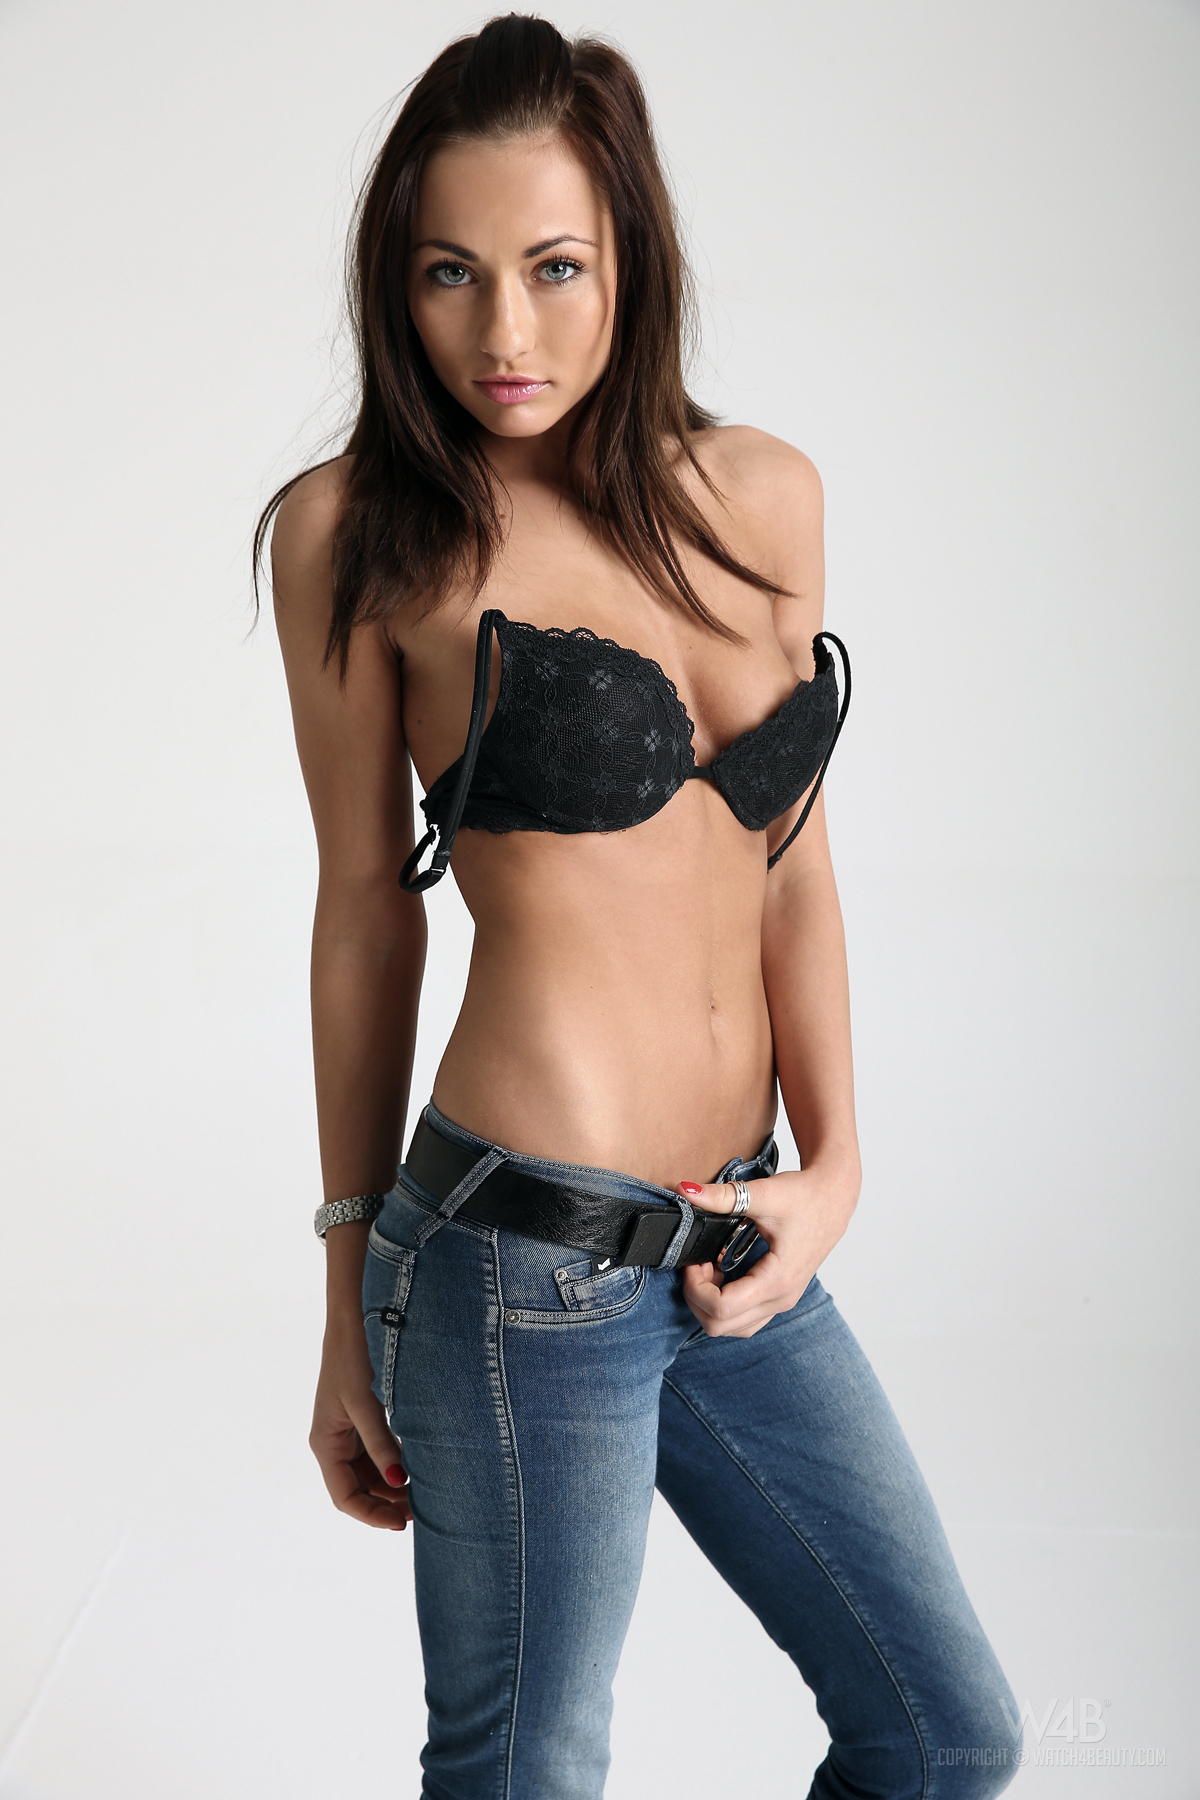 sexy-jeans-naked-girls-mix-vol7-51